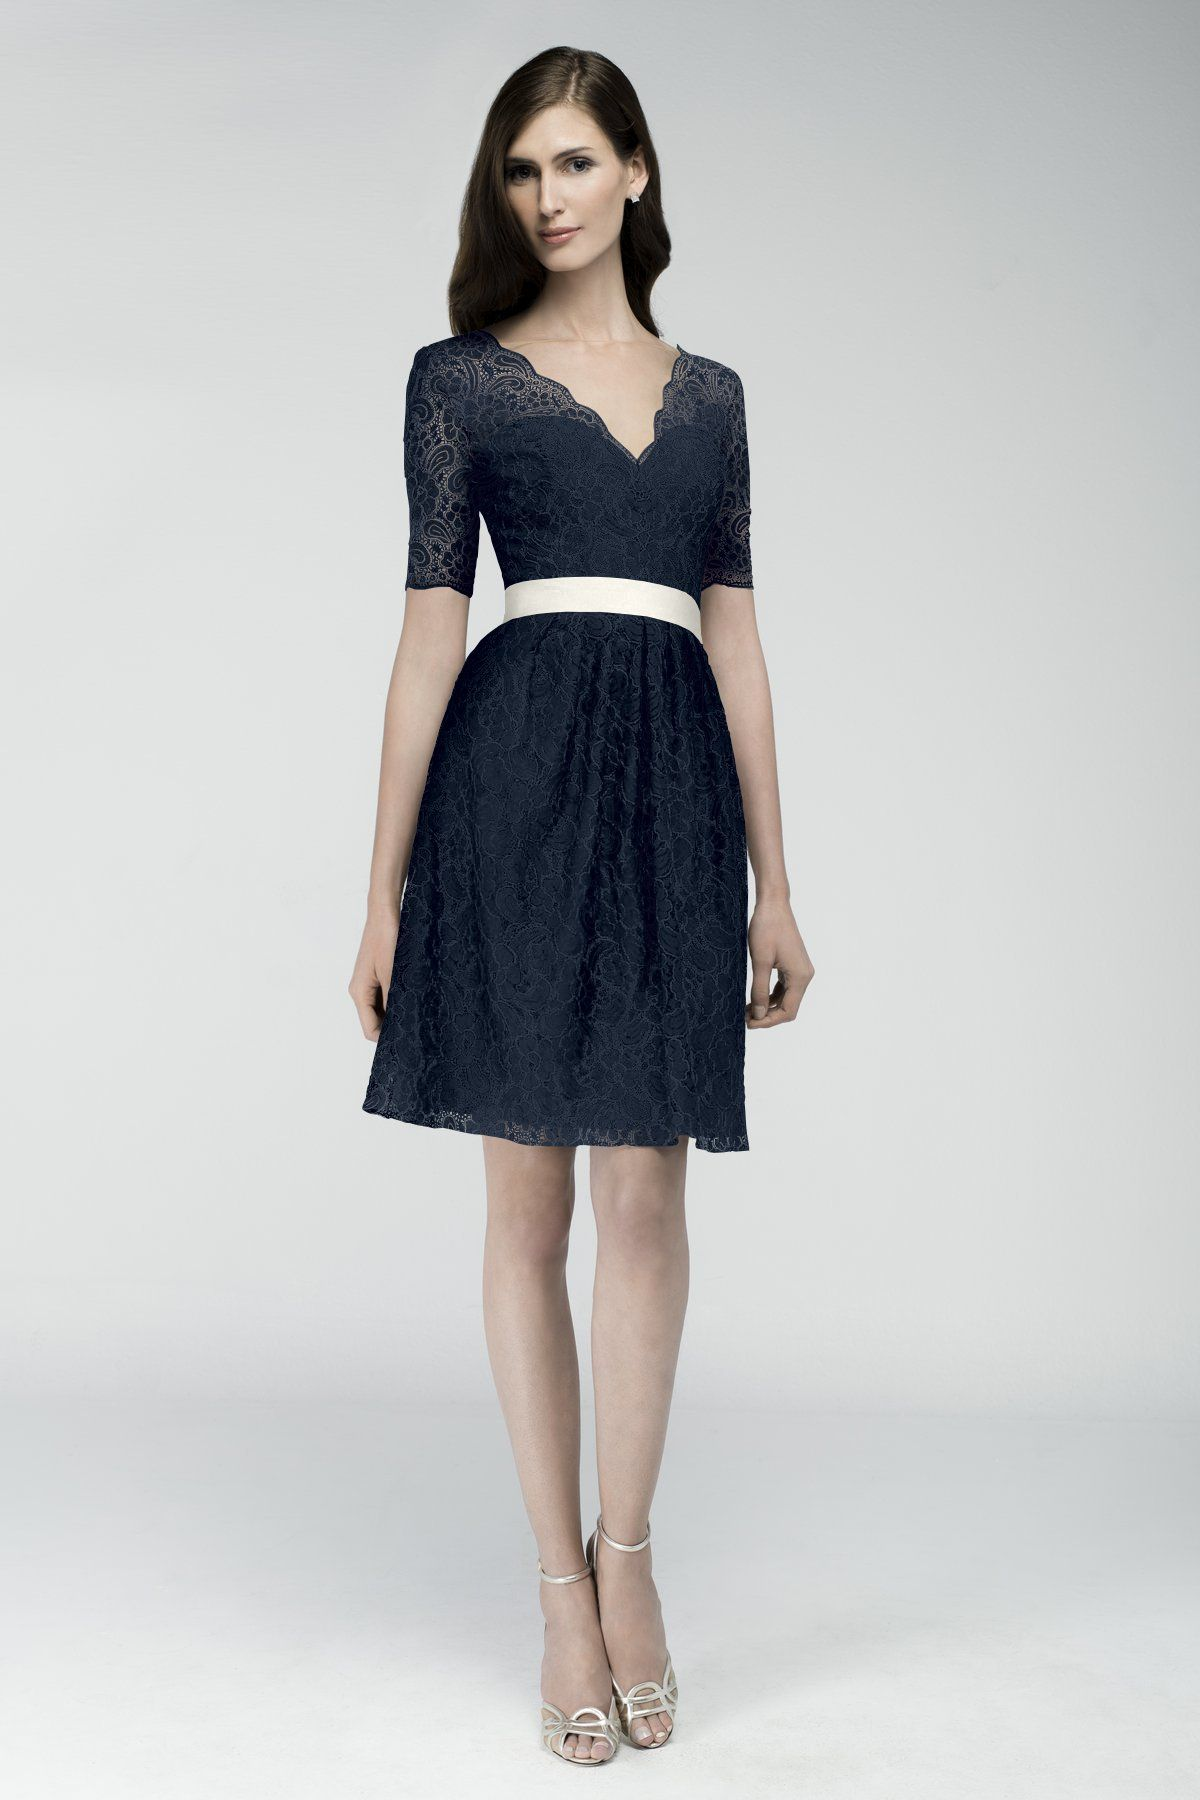 Watters Bridesmaid Dress Catania In Bella Lace At Weddington Way Find The Perfect Made To Order Dresses For Your Bridal Party